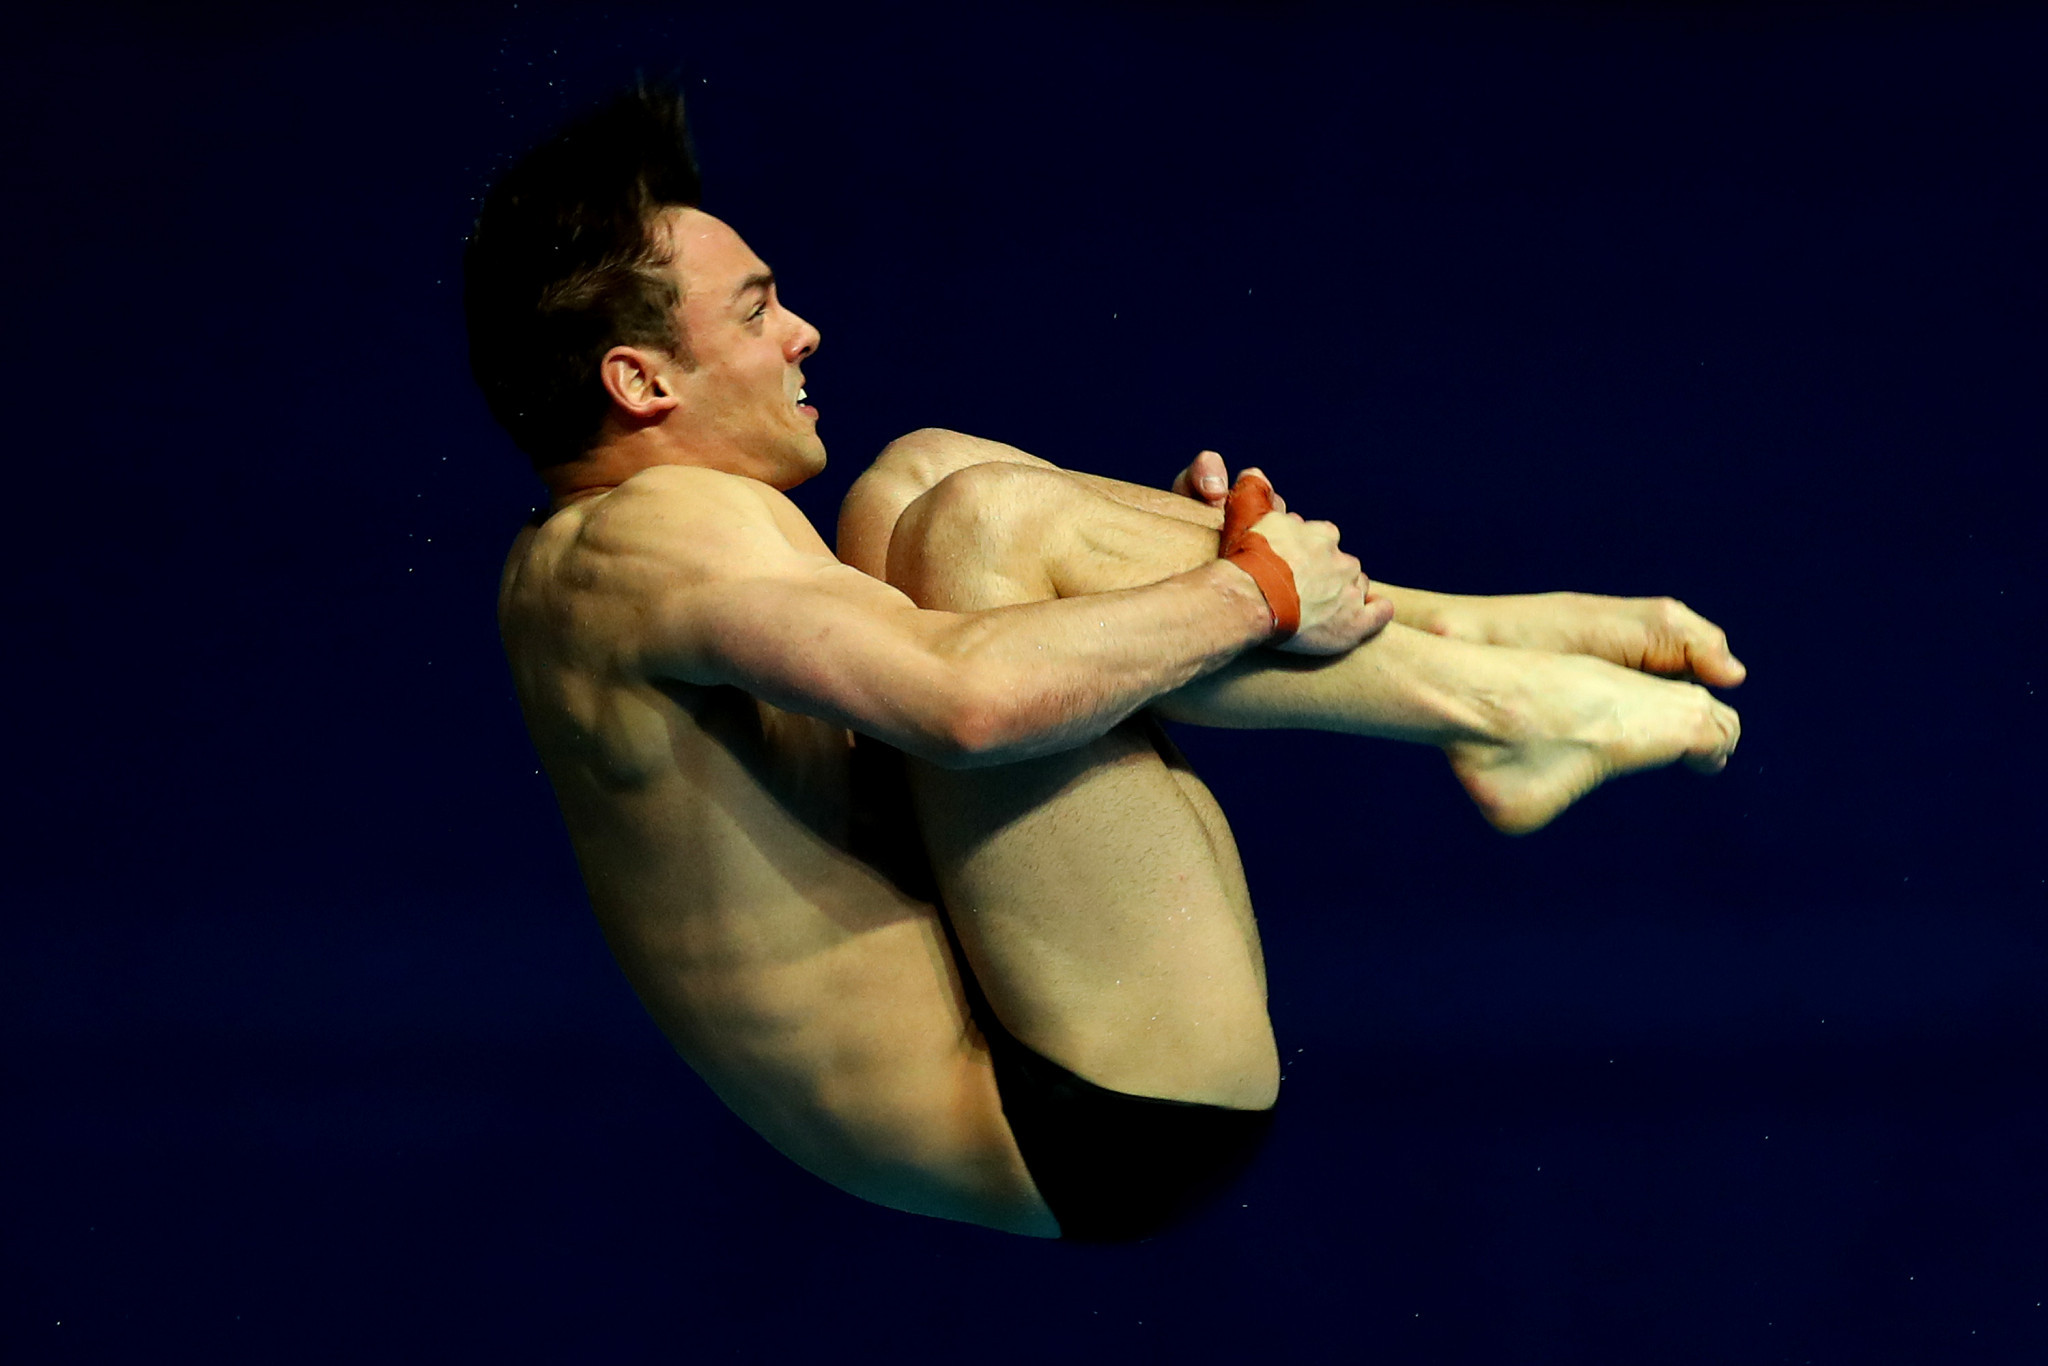 British diver Tom Daley won World Championships bronze in the men's 10m synchro final alongside Matt Lee last month ©Getty Images